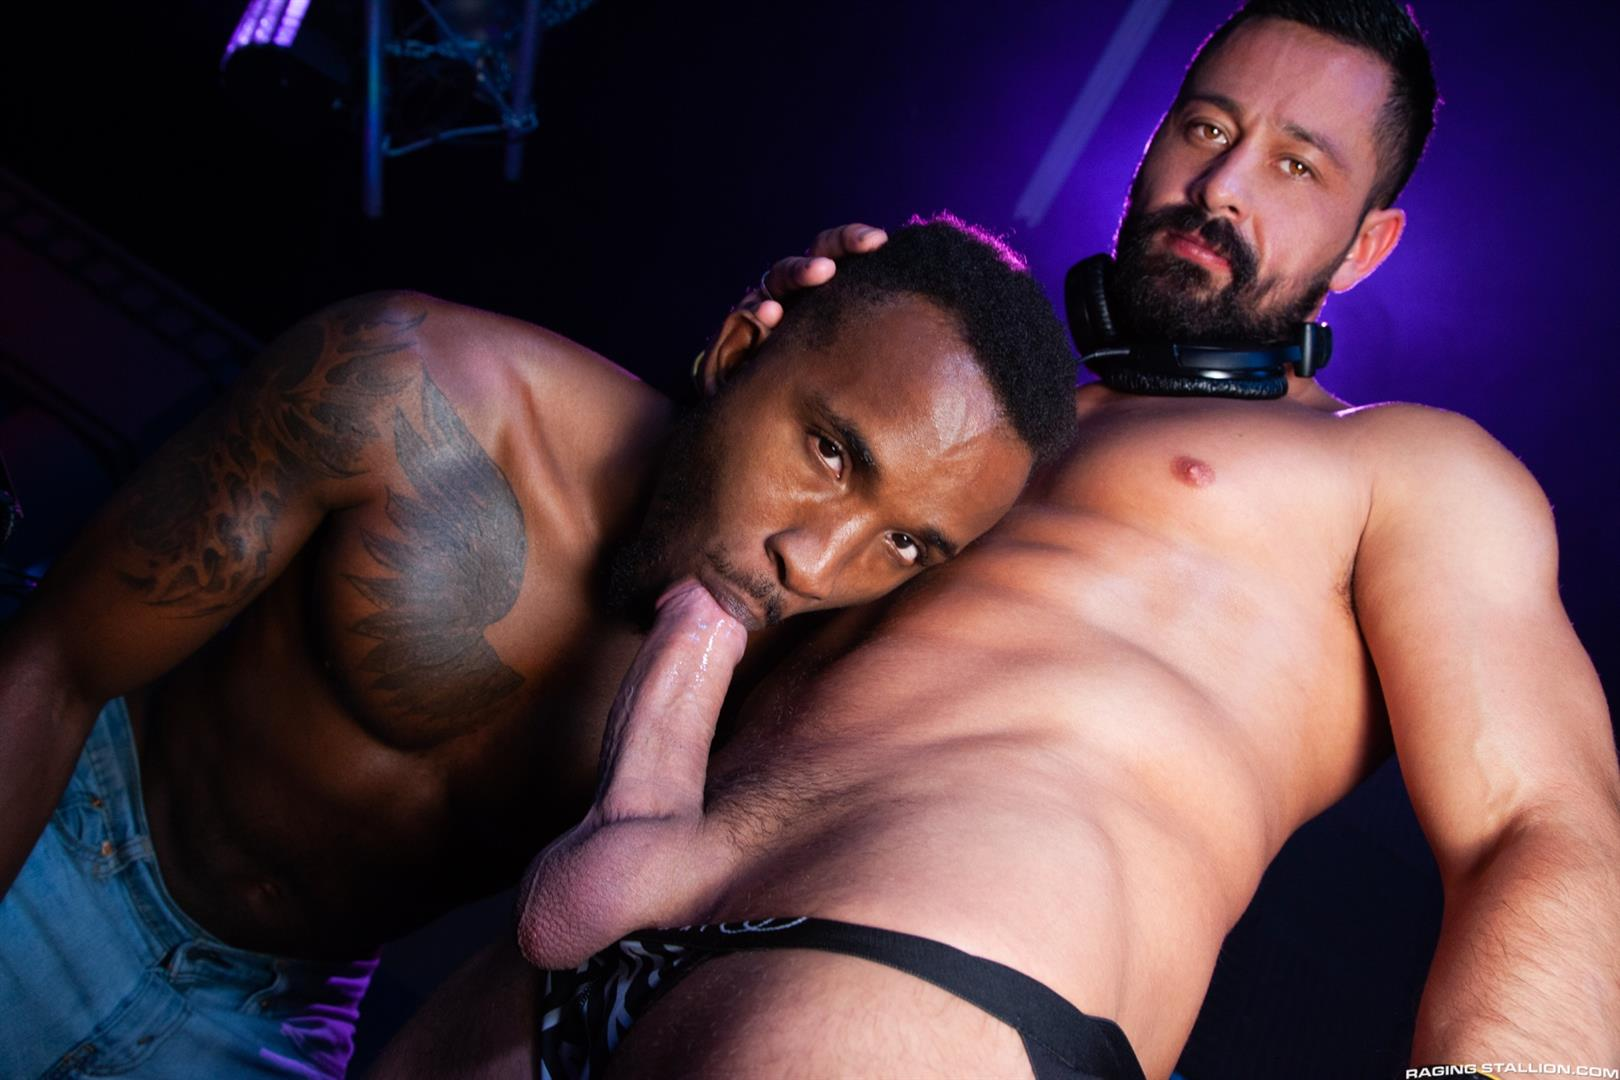 Raging-Stallion-Pheonix-Fellington-and-Cristian-Sam-Big-Black-Cocksucking-Video-10 Getting My Big Black Cock Sucked In The DJ Booth